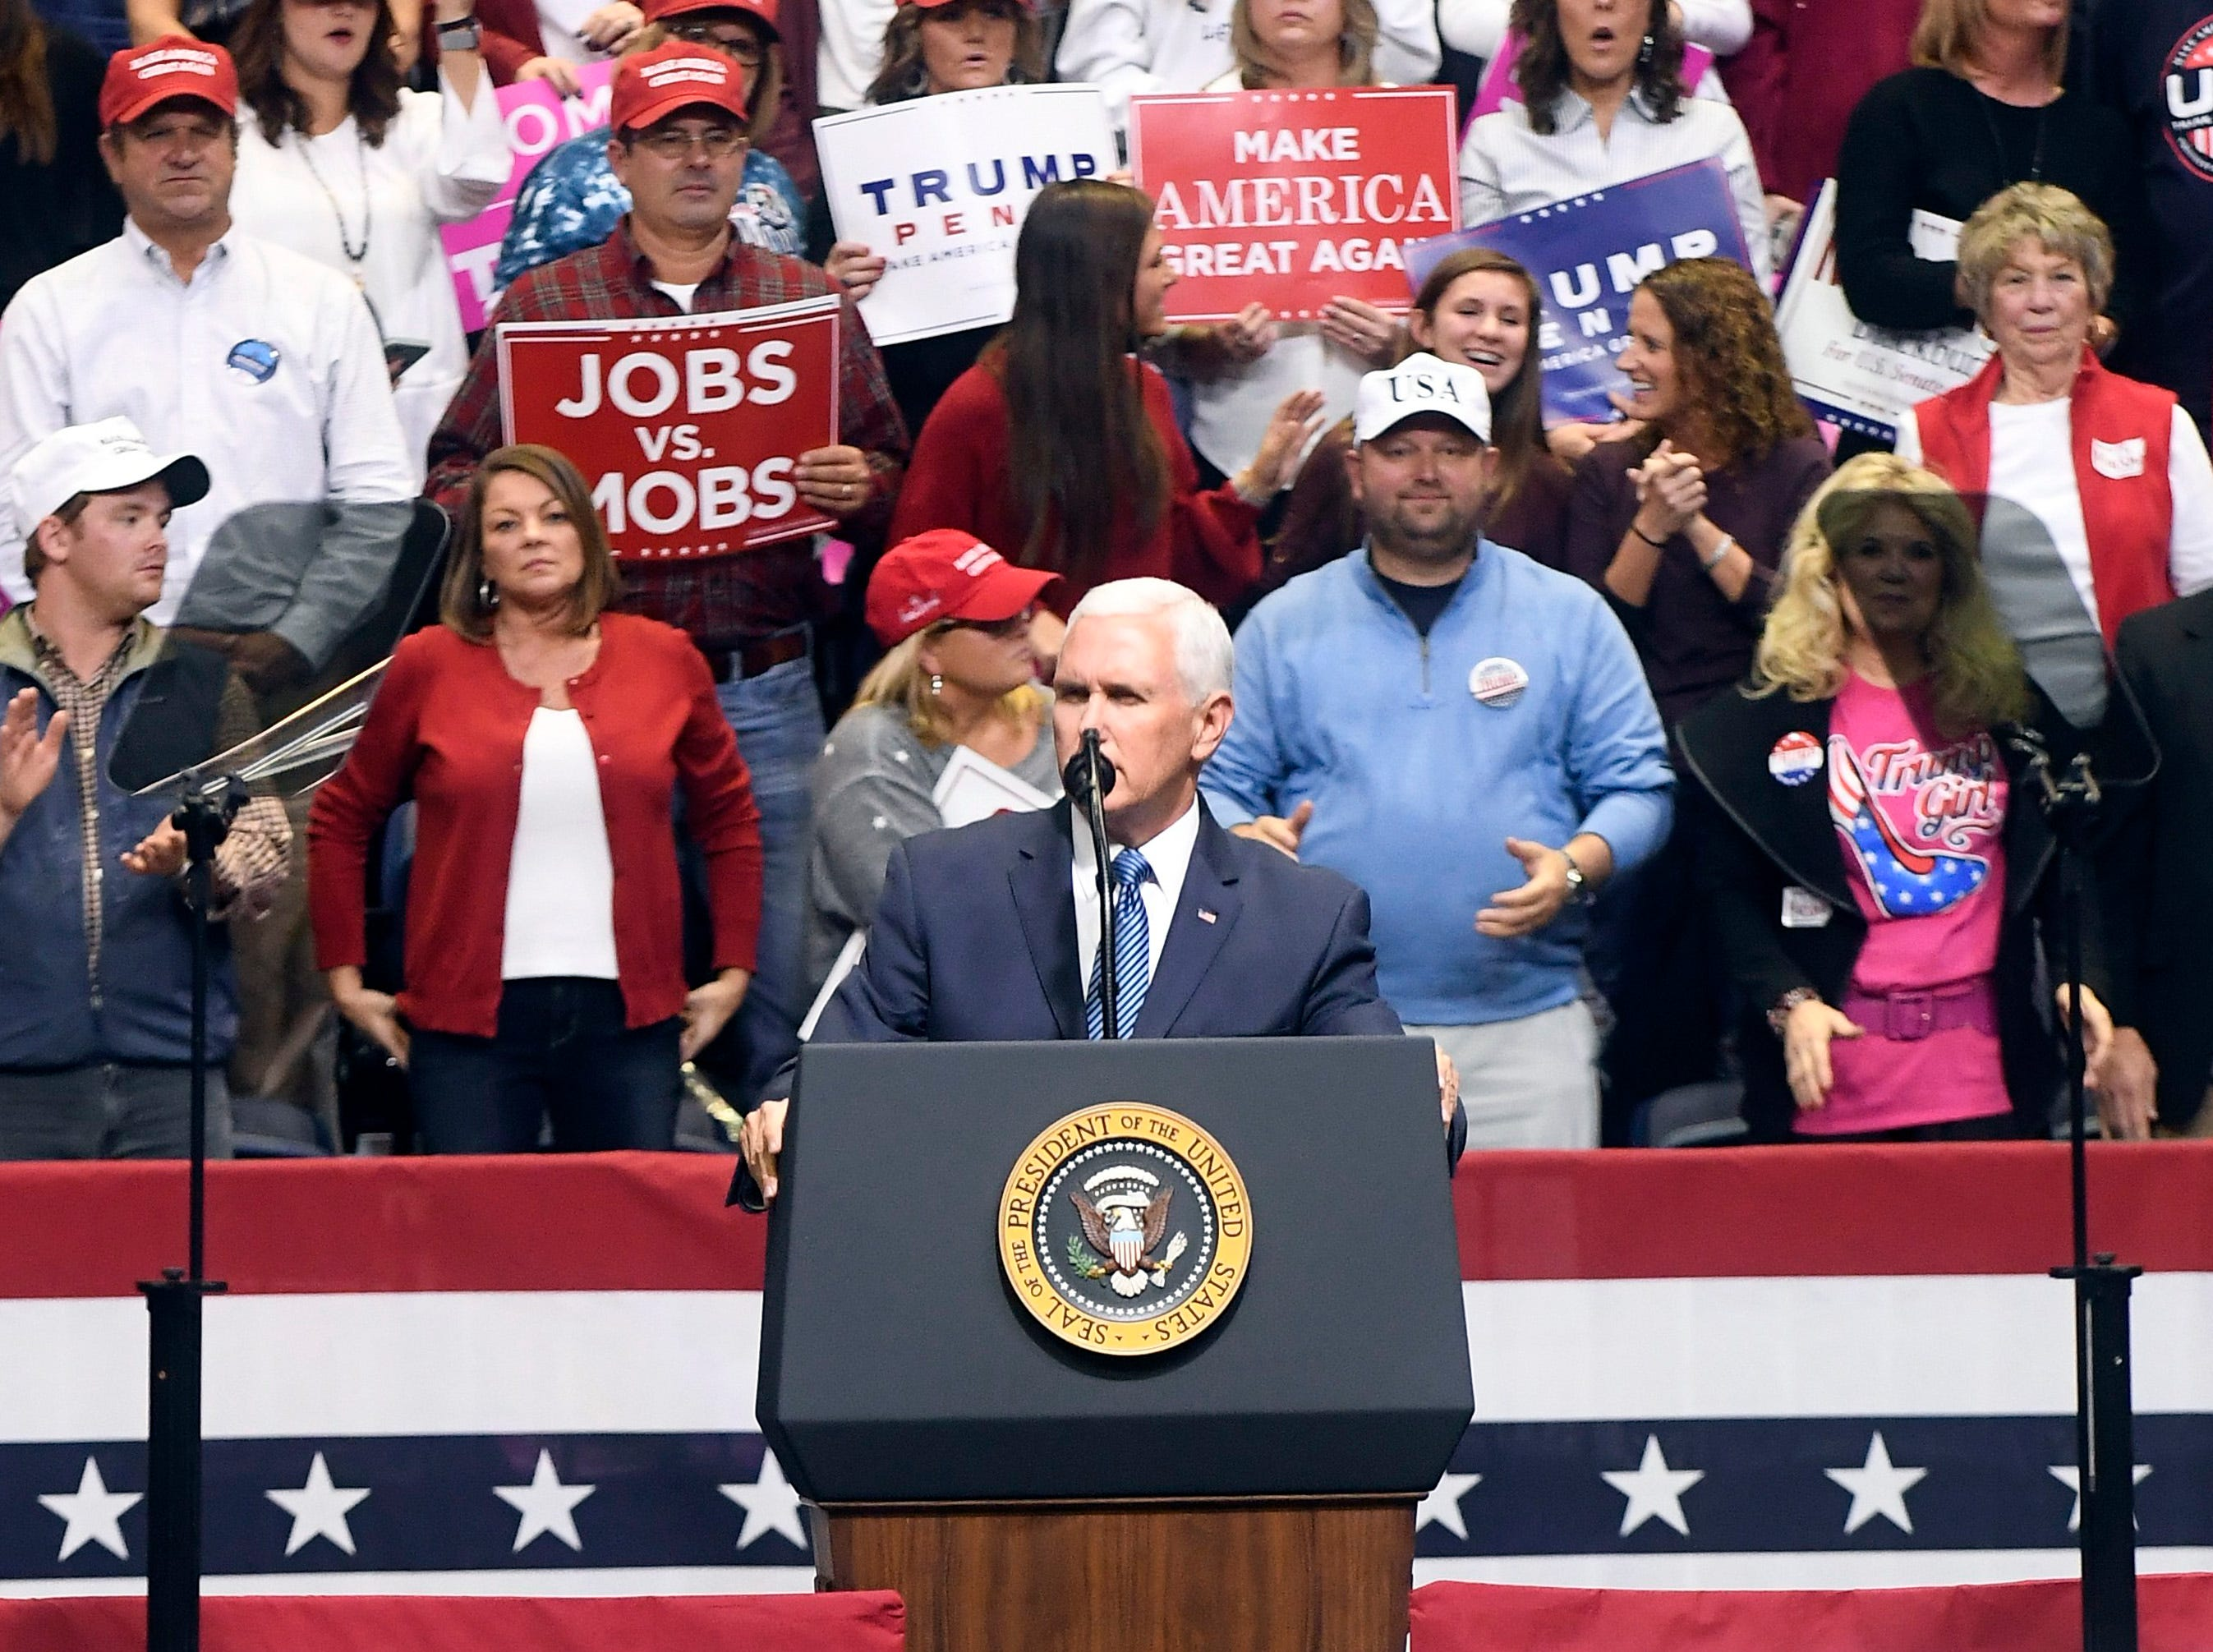 Vice President Mike Pence welcomes the crowd at a rally for Rep. Marsha Blackburn at McKenzie Arena on Sunday, November 4, 2018.